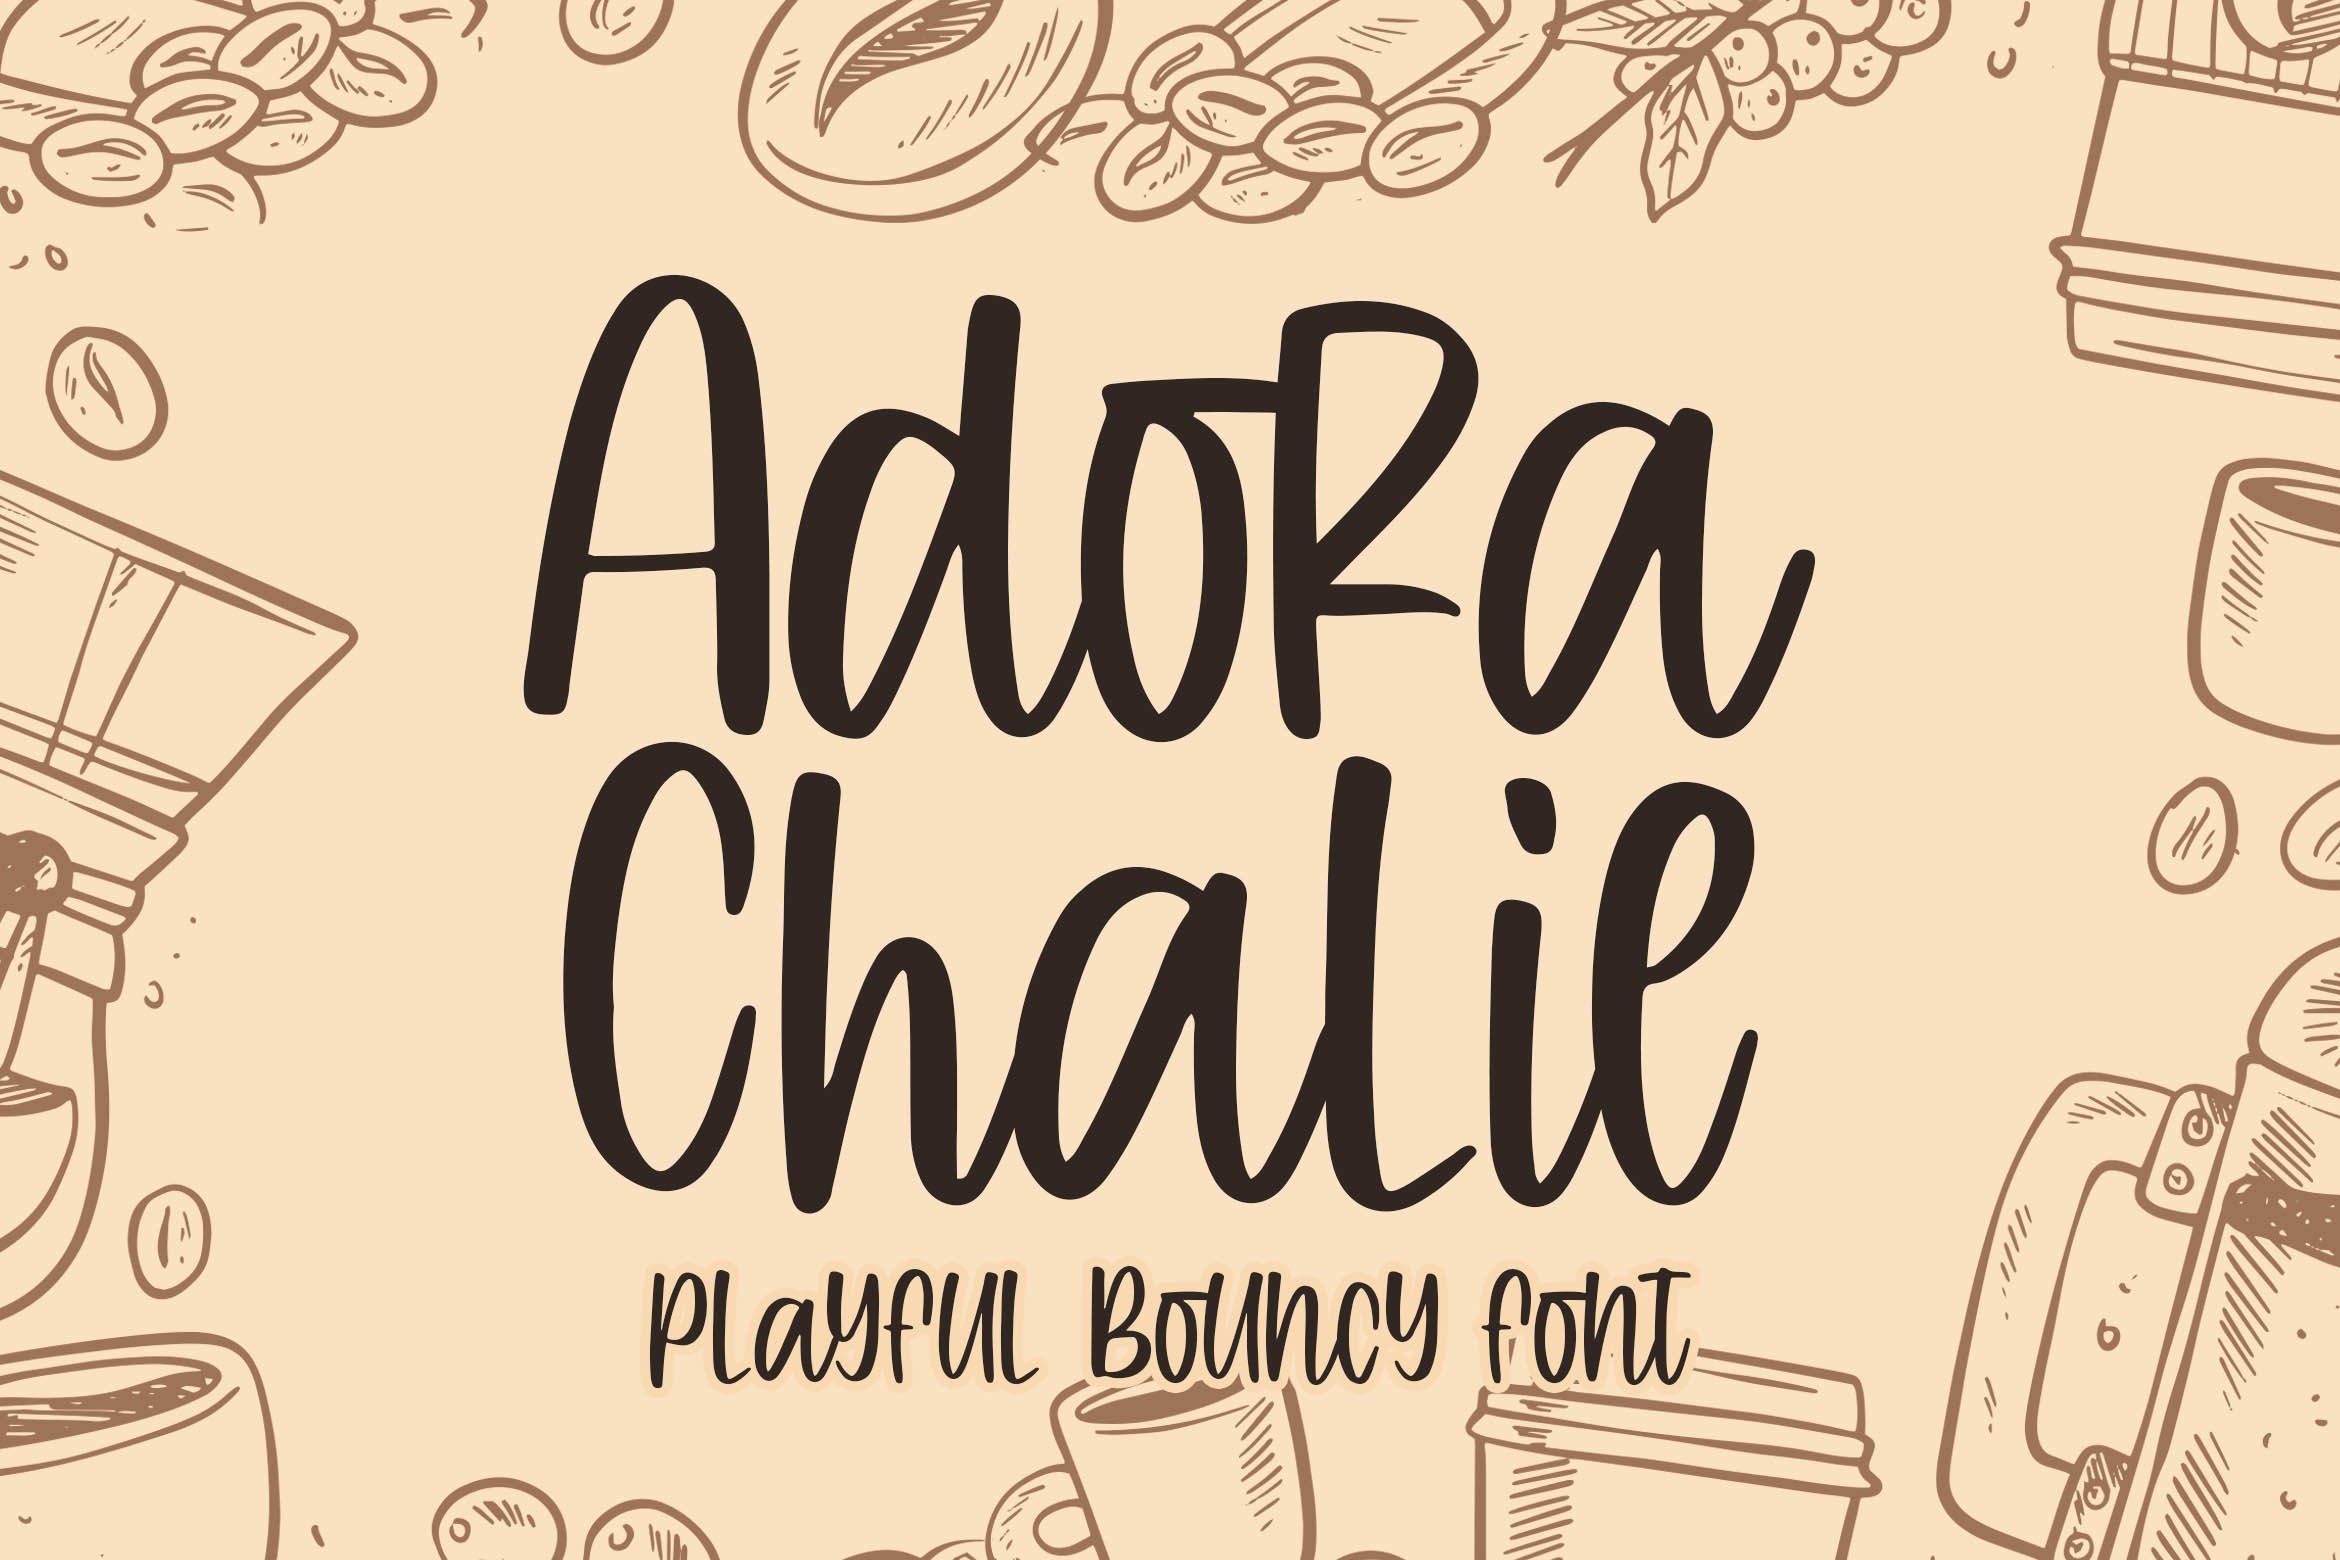 Adora Chalie - Playful Bouncy Font example image 1